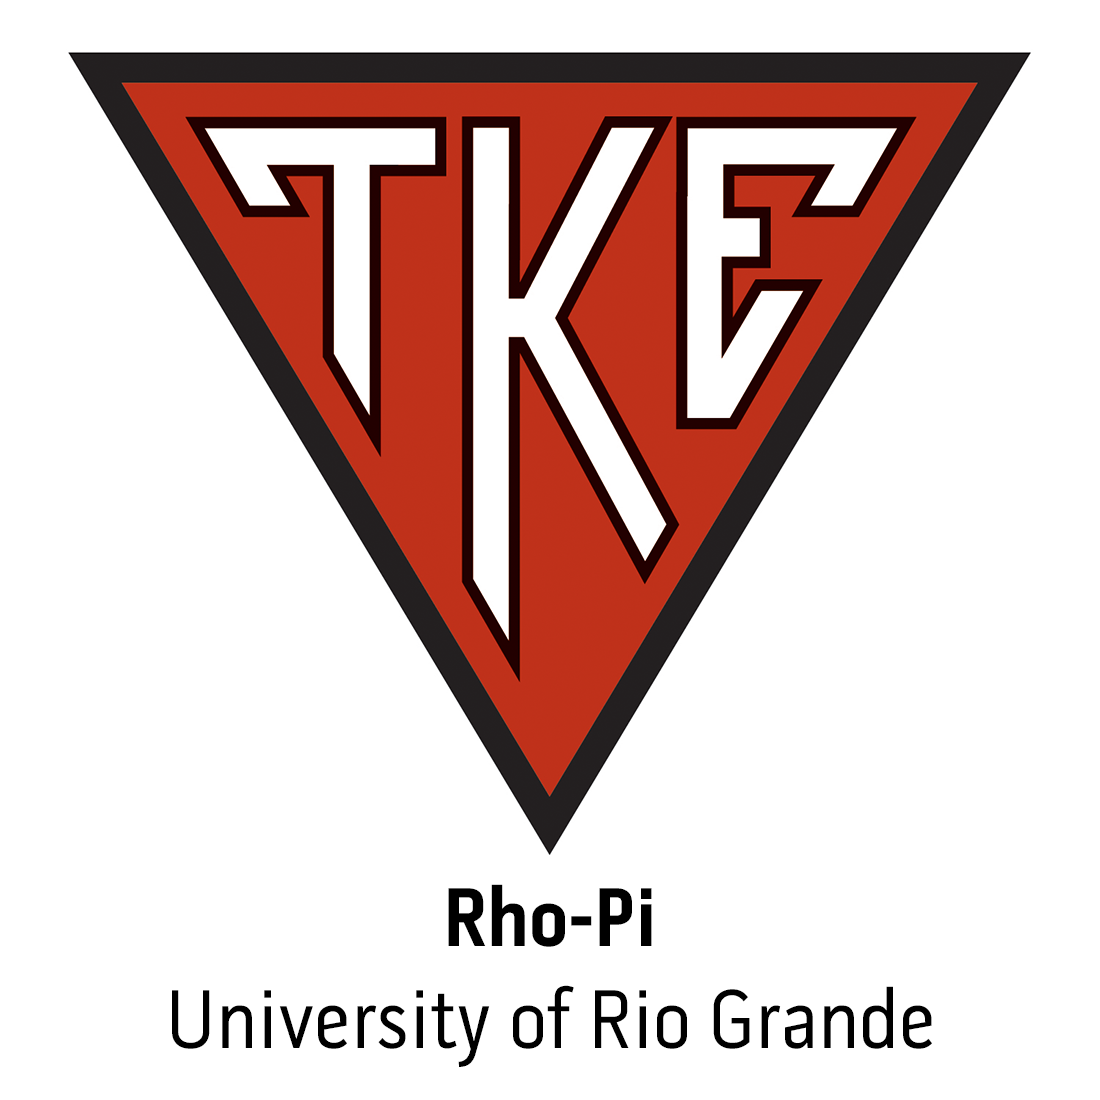 Rho-Pi Chapter at University of Rio Grande